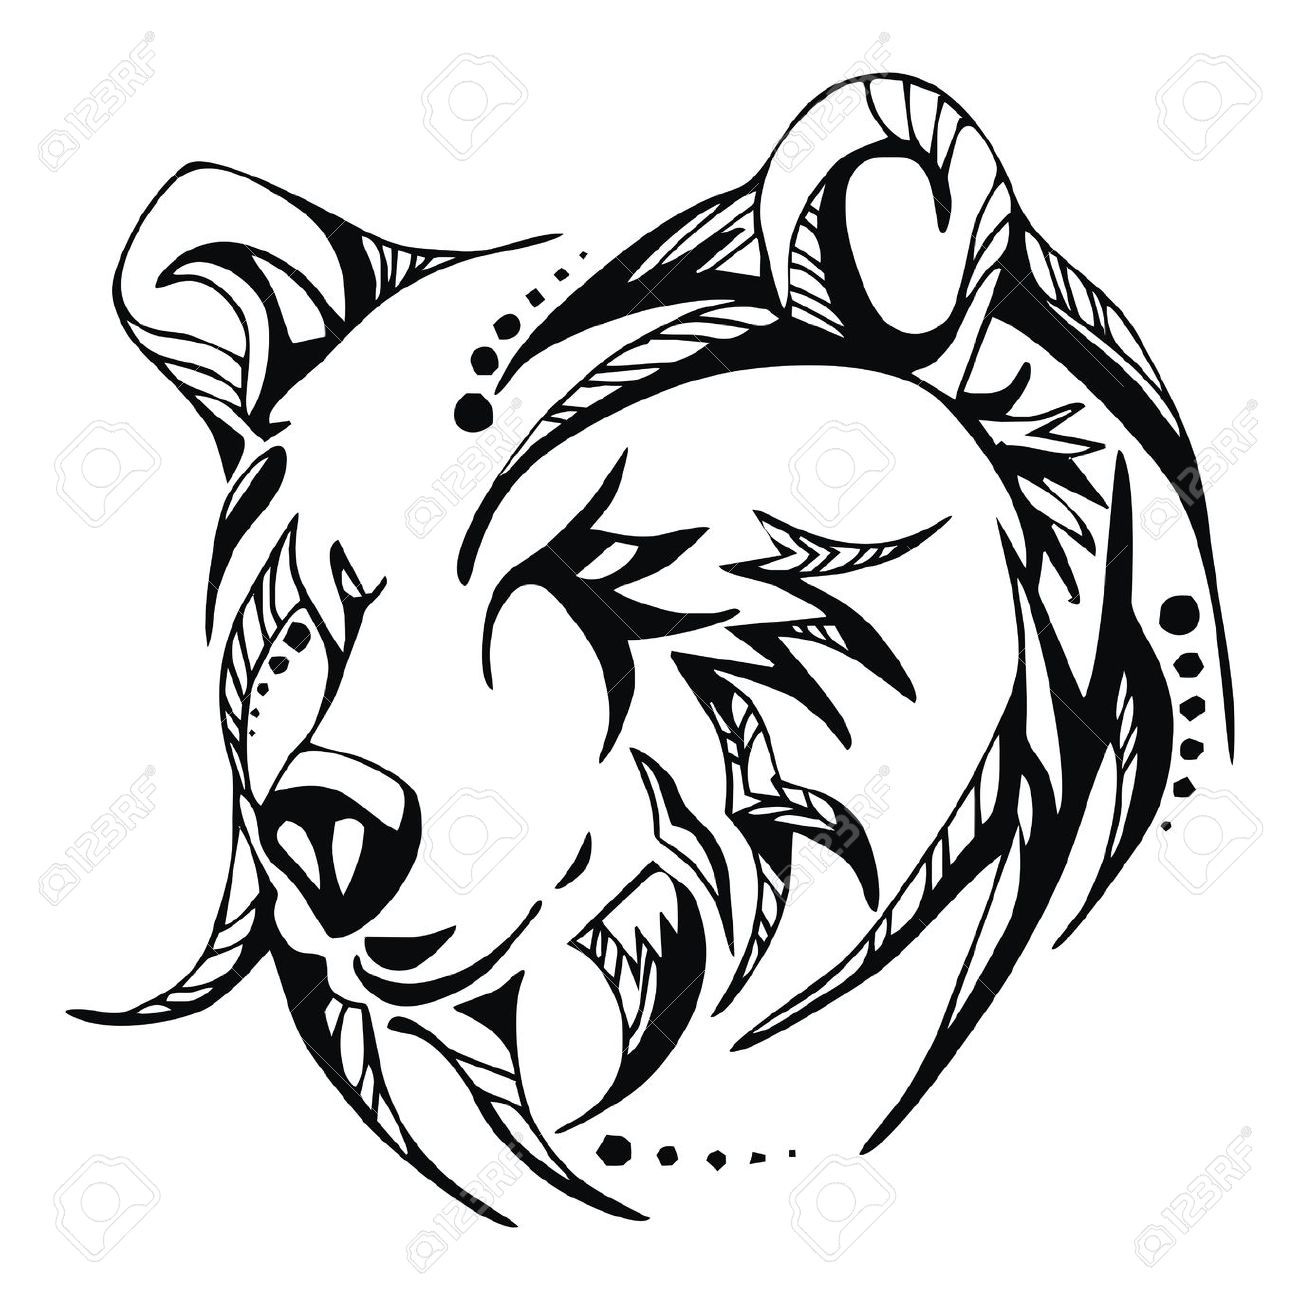 Drawn grizzly bear bear head Pinterest tattoos Bear Grizzly Images